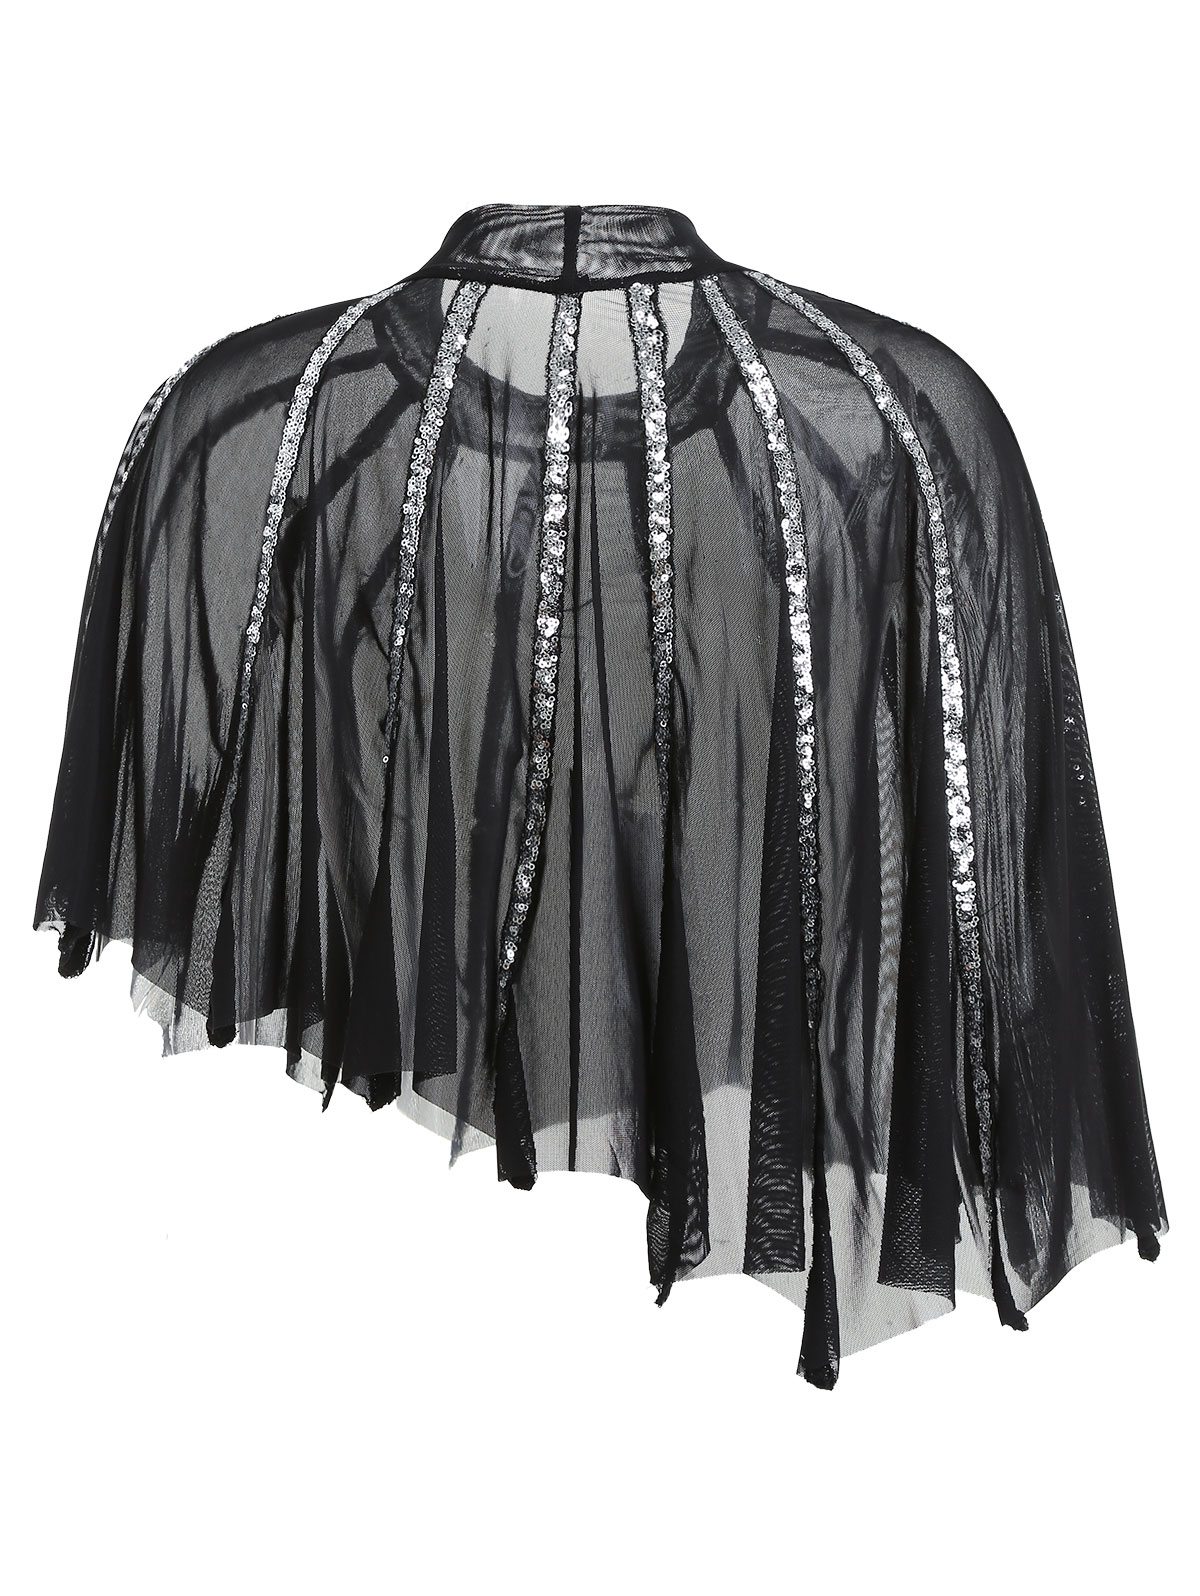 aecfae51 Wipalo Plus Size See Thru Sequins Sheer Mesh Cape Asymmetric Blouse Women  Mock Neck High Low Mesh Crop Blouse 5XL Blusas Top-in Blouses & Shirts from  ...